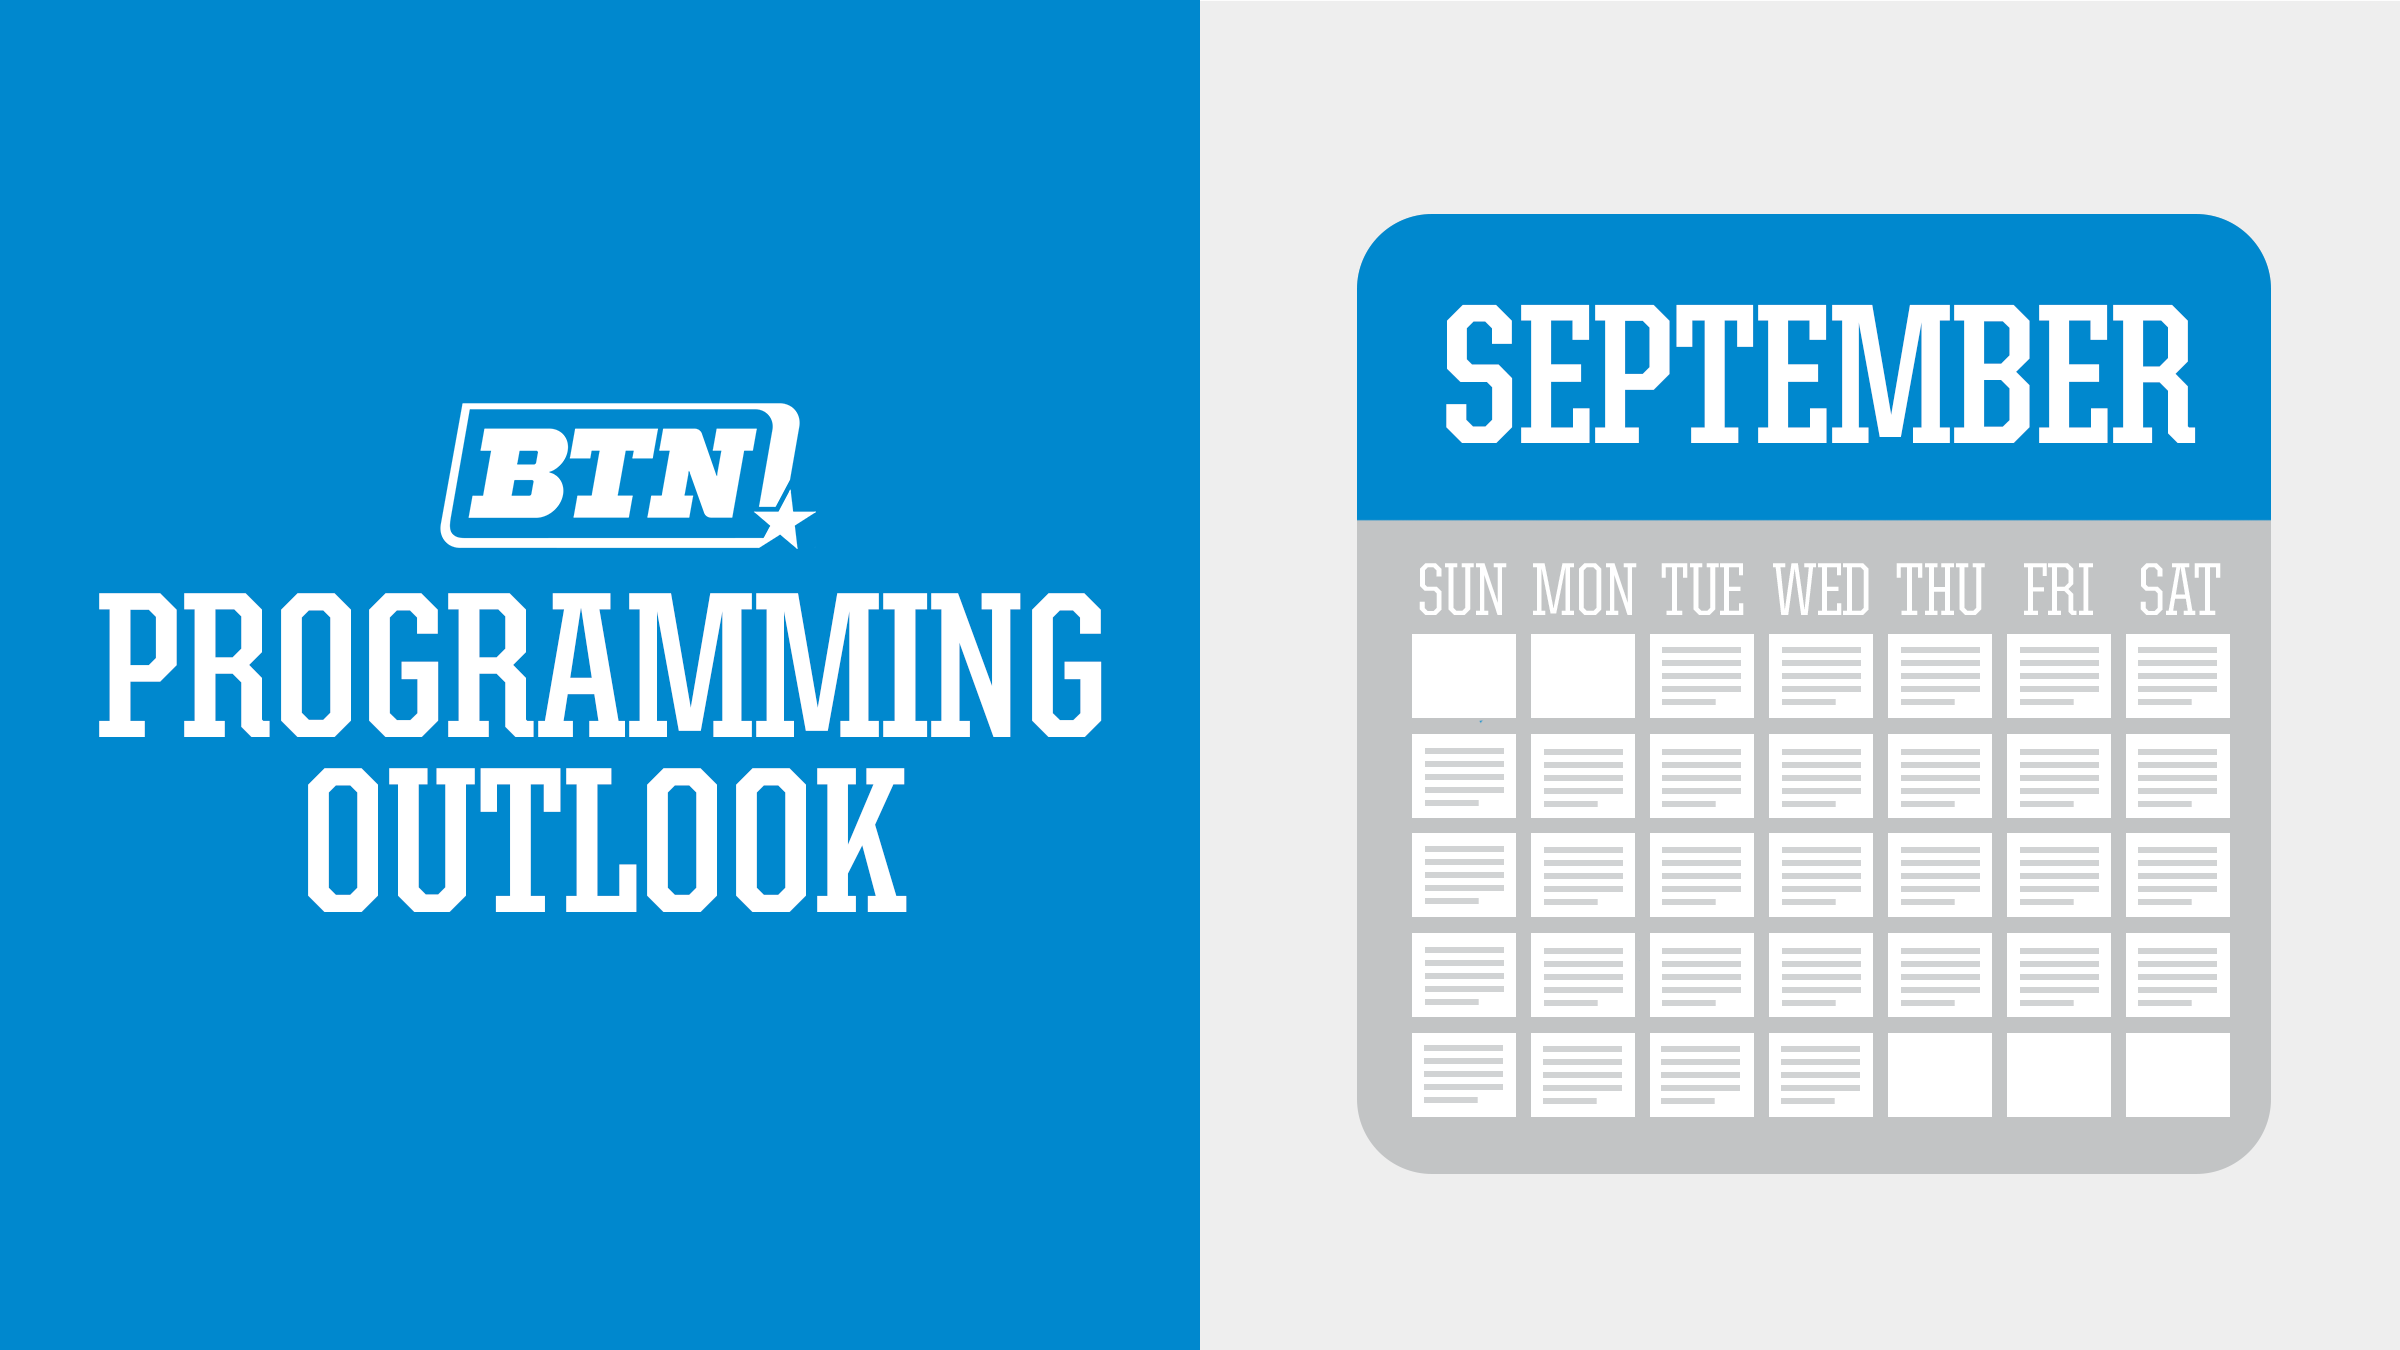 BTN's September Programming Outlook - Big Ten Network